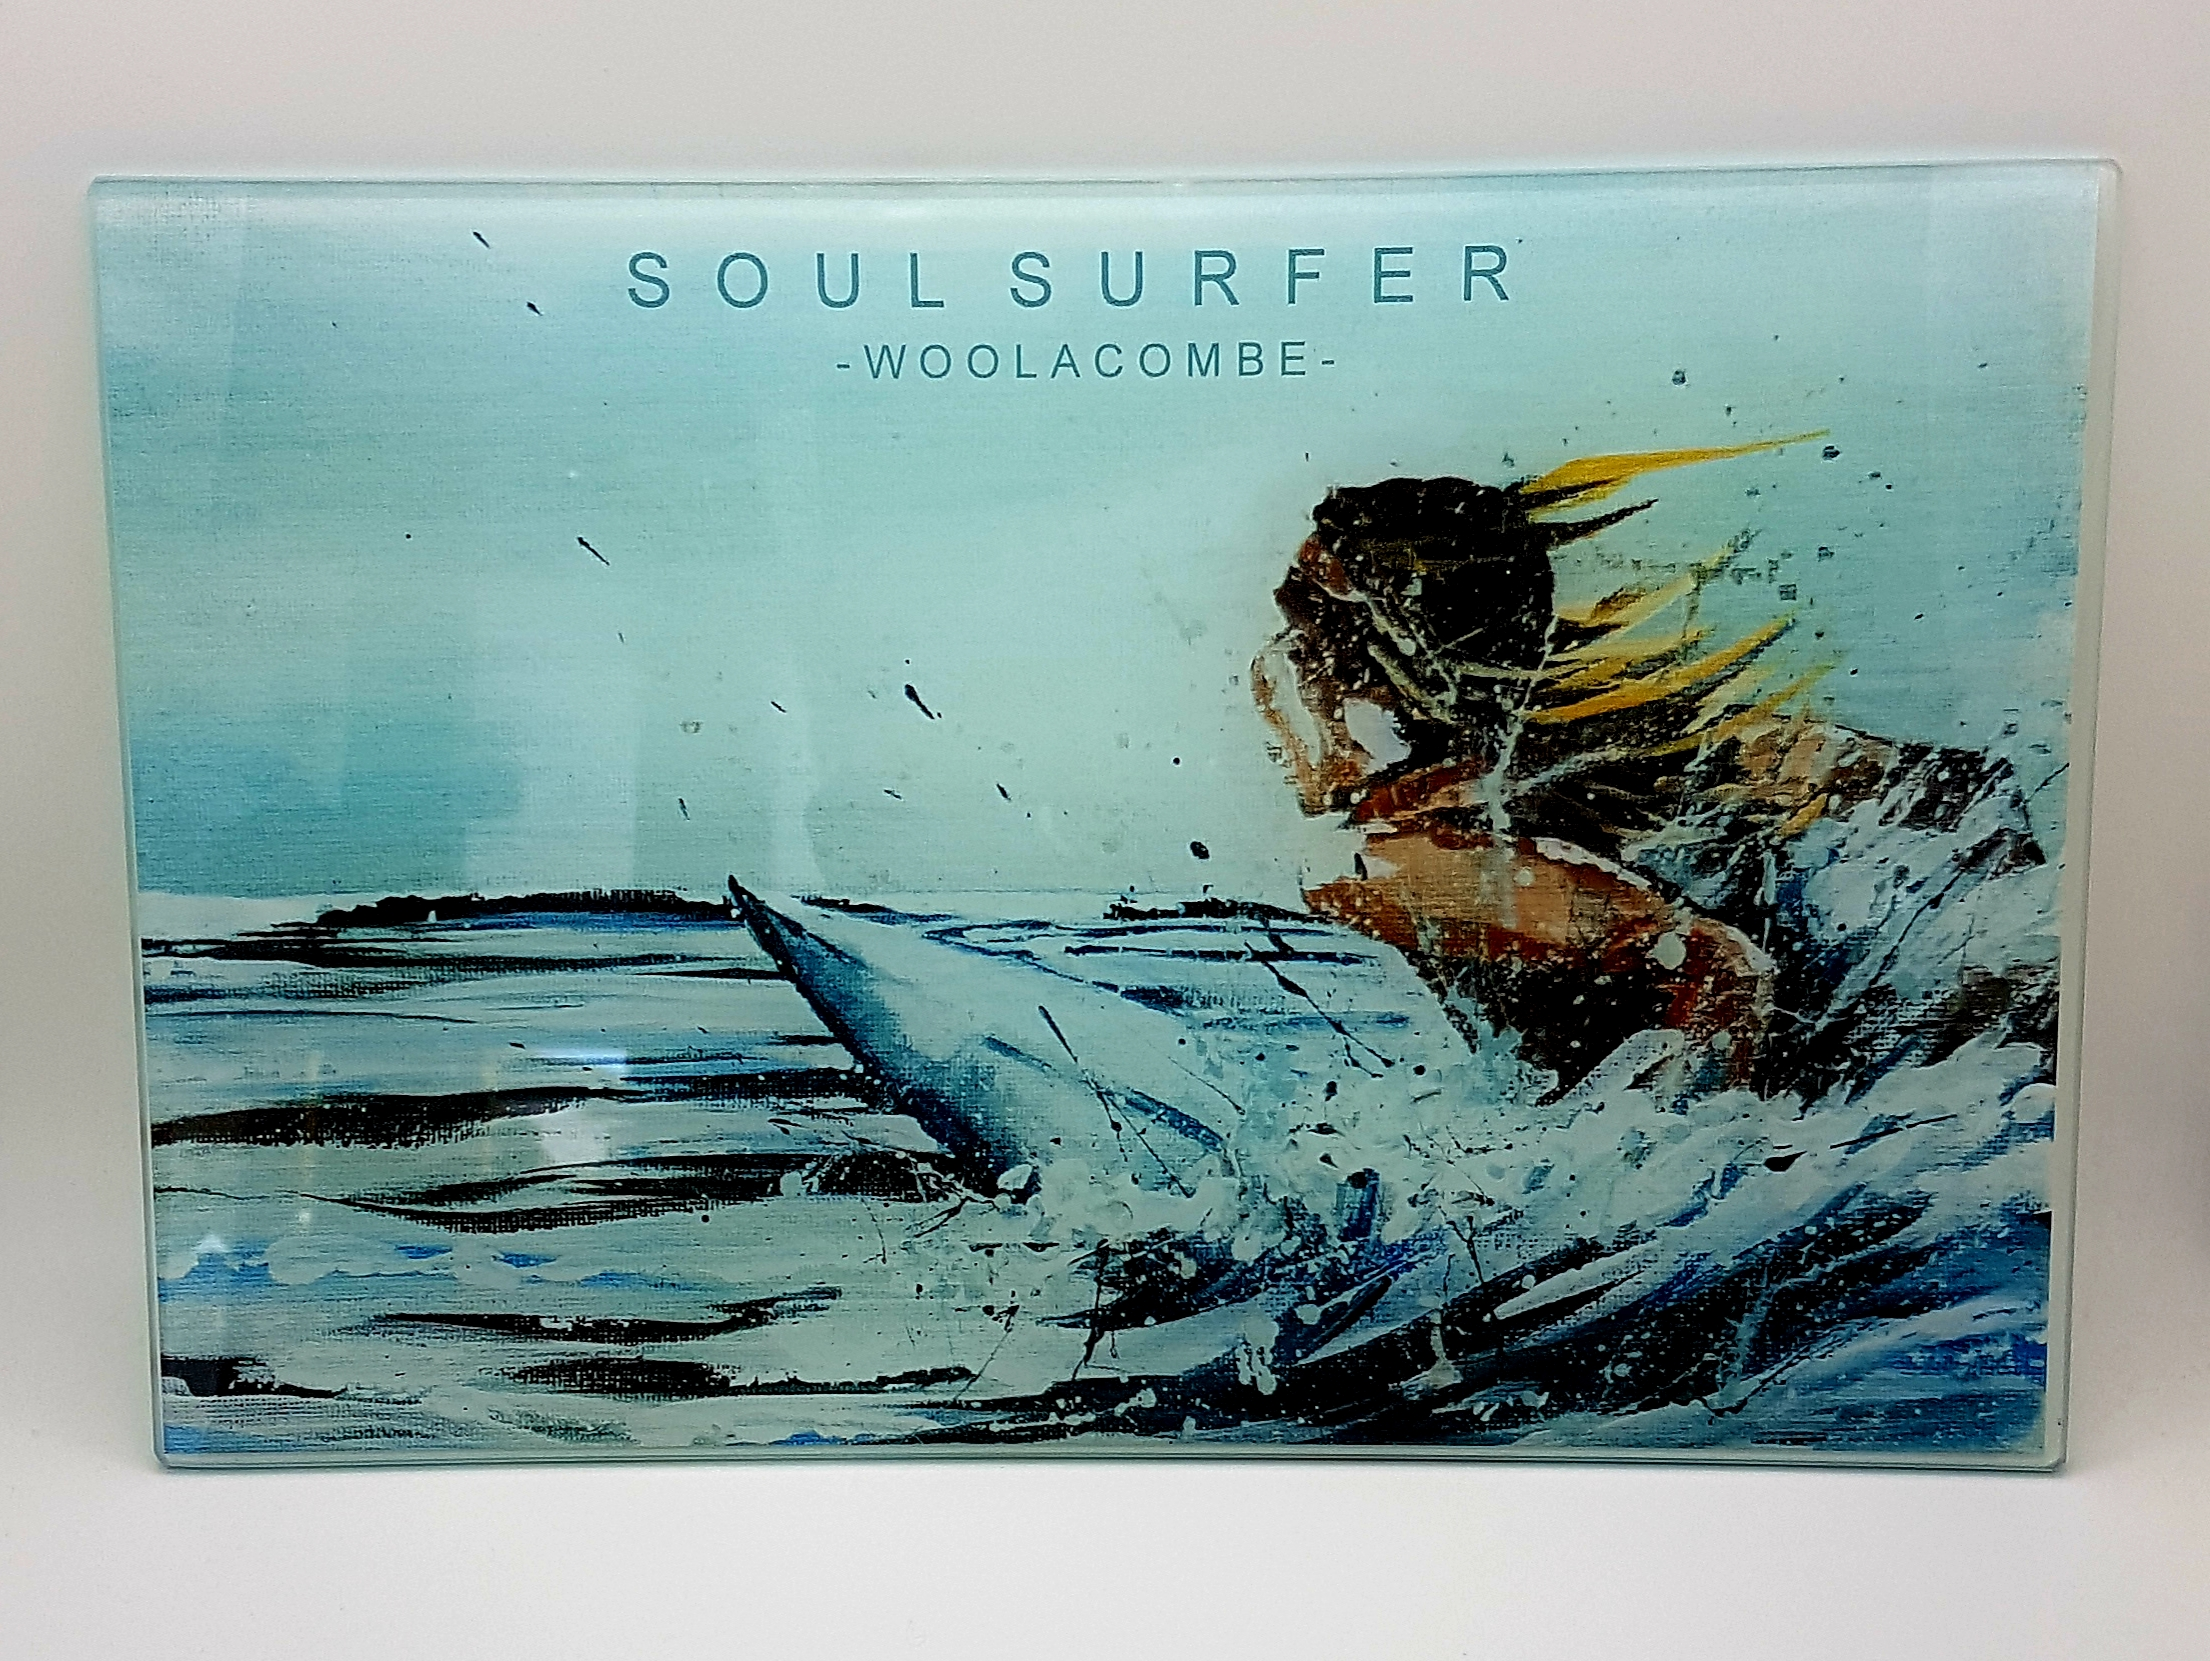 Glass worktop saver, table mat and coaster. Soul surfer